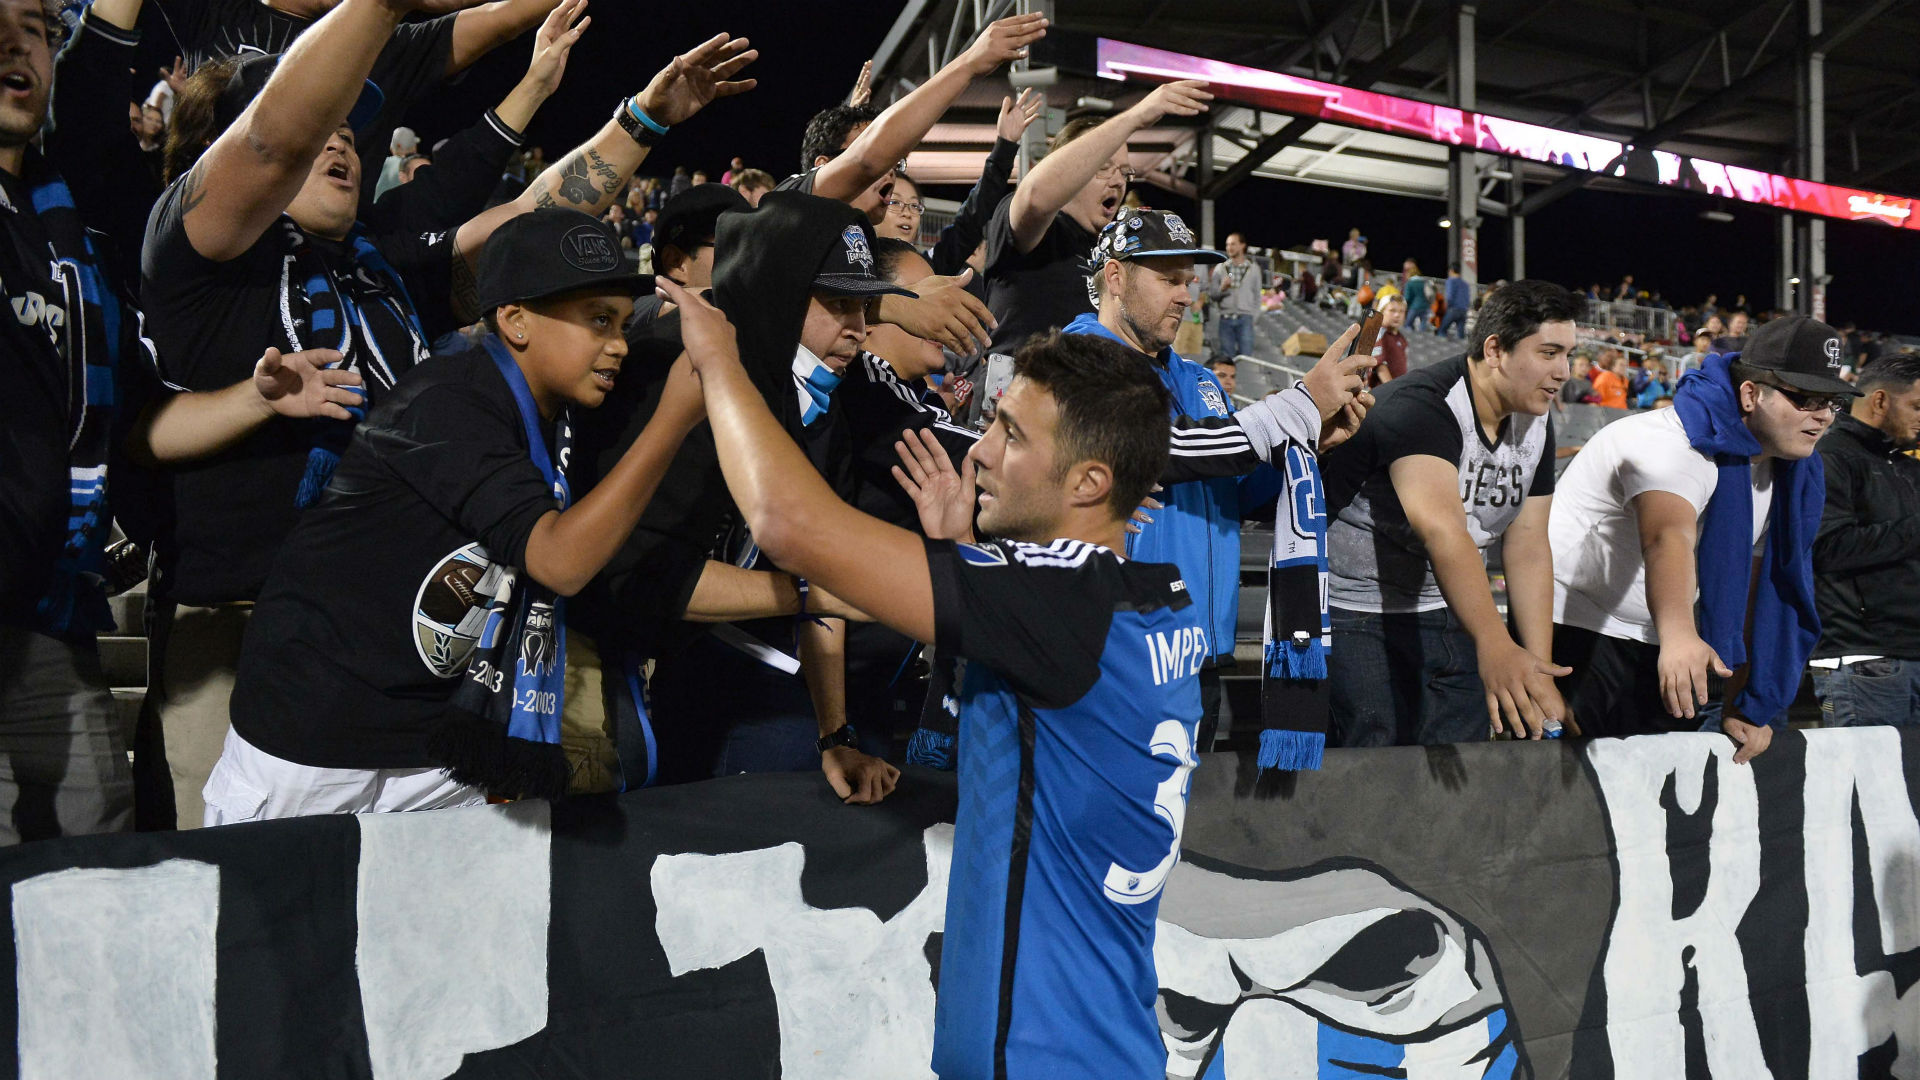 Andres Imperiale San Jose Earthquakes MLS